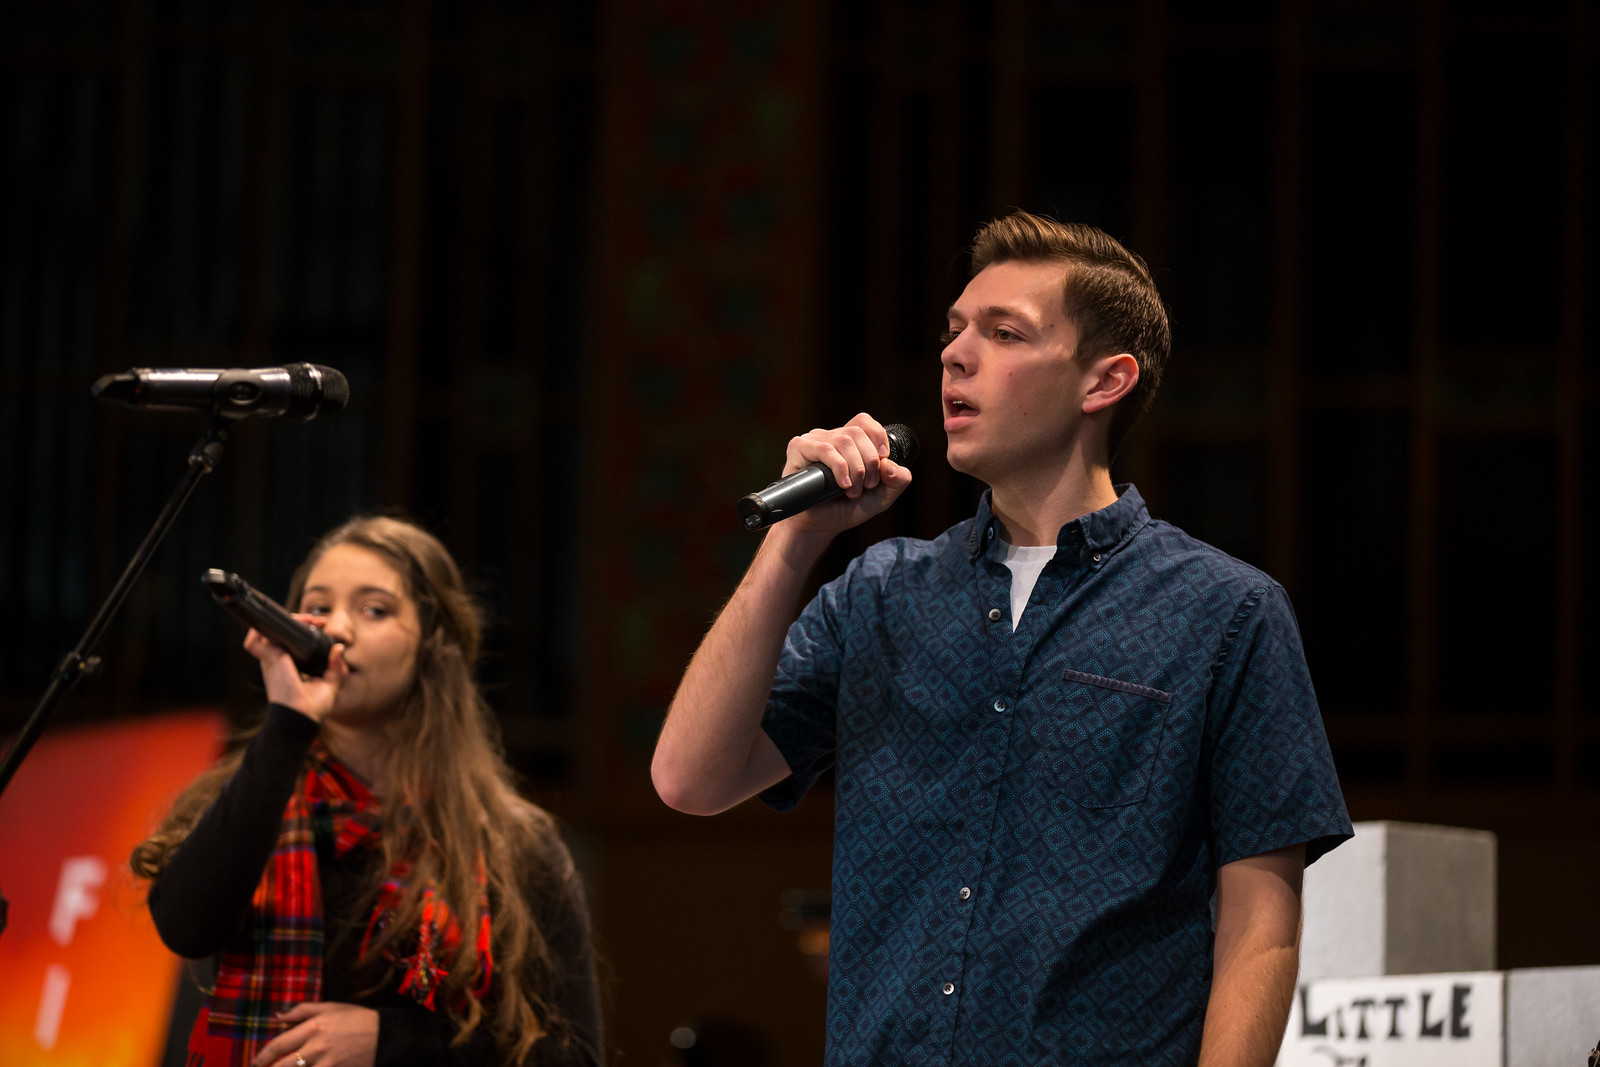 Pictured: Emma ramirez and braden stanyer leading at week of worship 2017